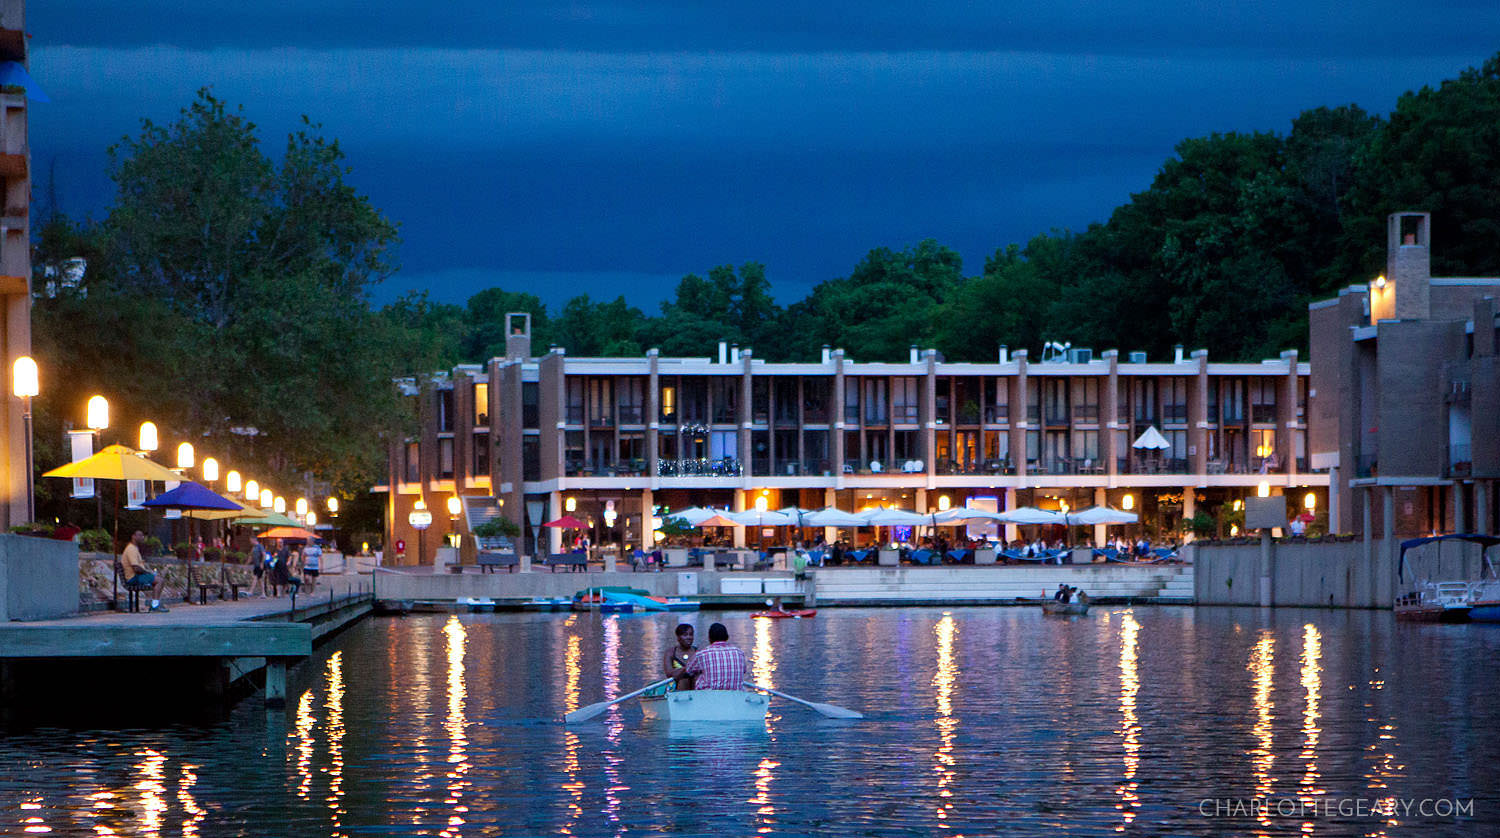 Summer night at Lake Anne Plaza in Reston, Virginia